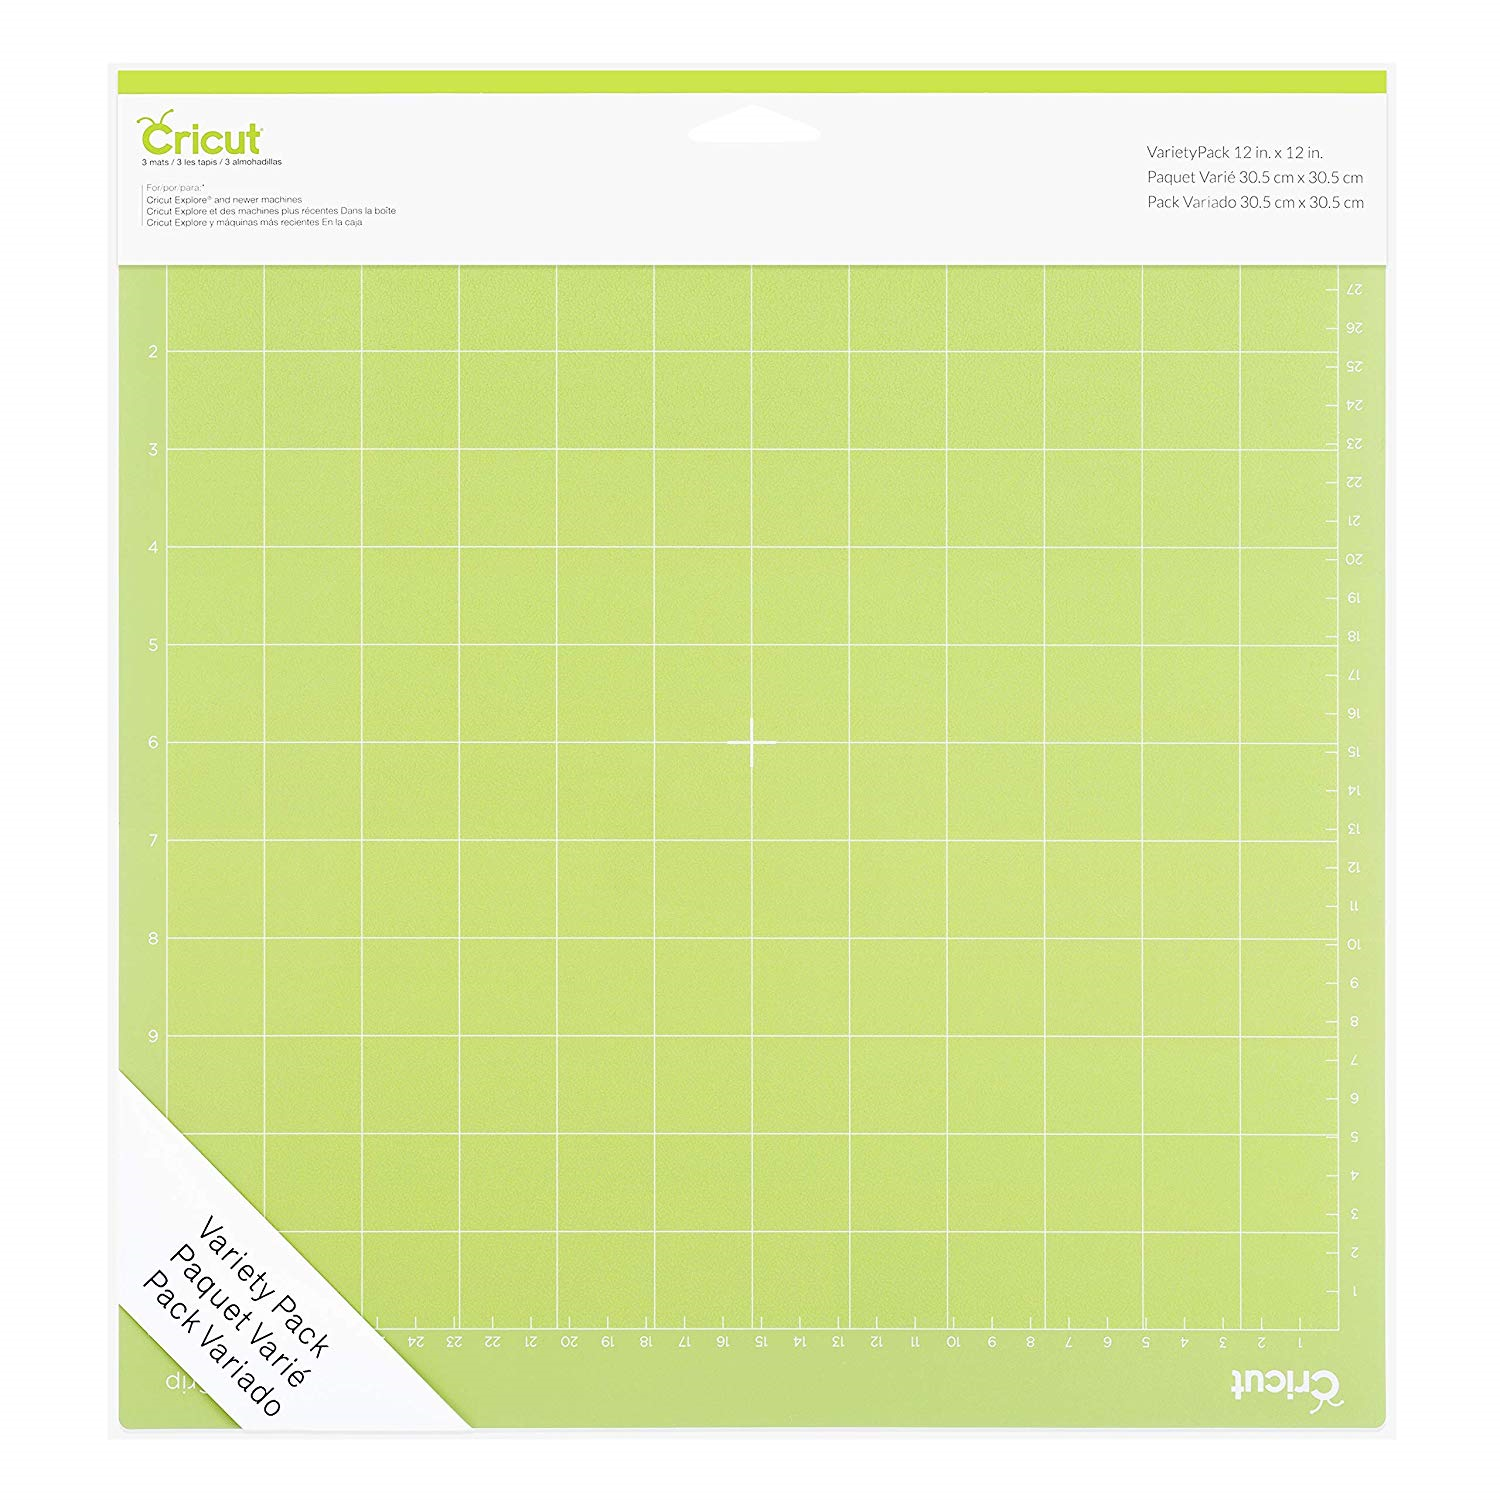 """Cricut Tools Accessories Variety 3 pack Adhesive Cutting Mat 12"""" x 12"""" 2002217 10"""